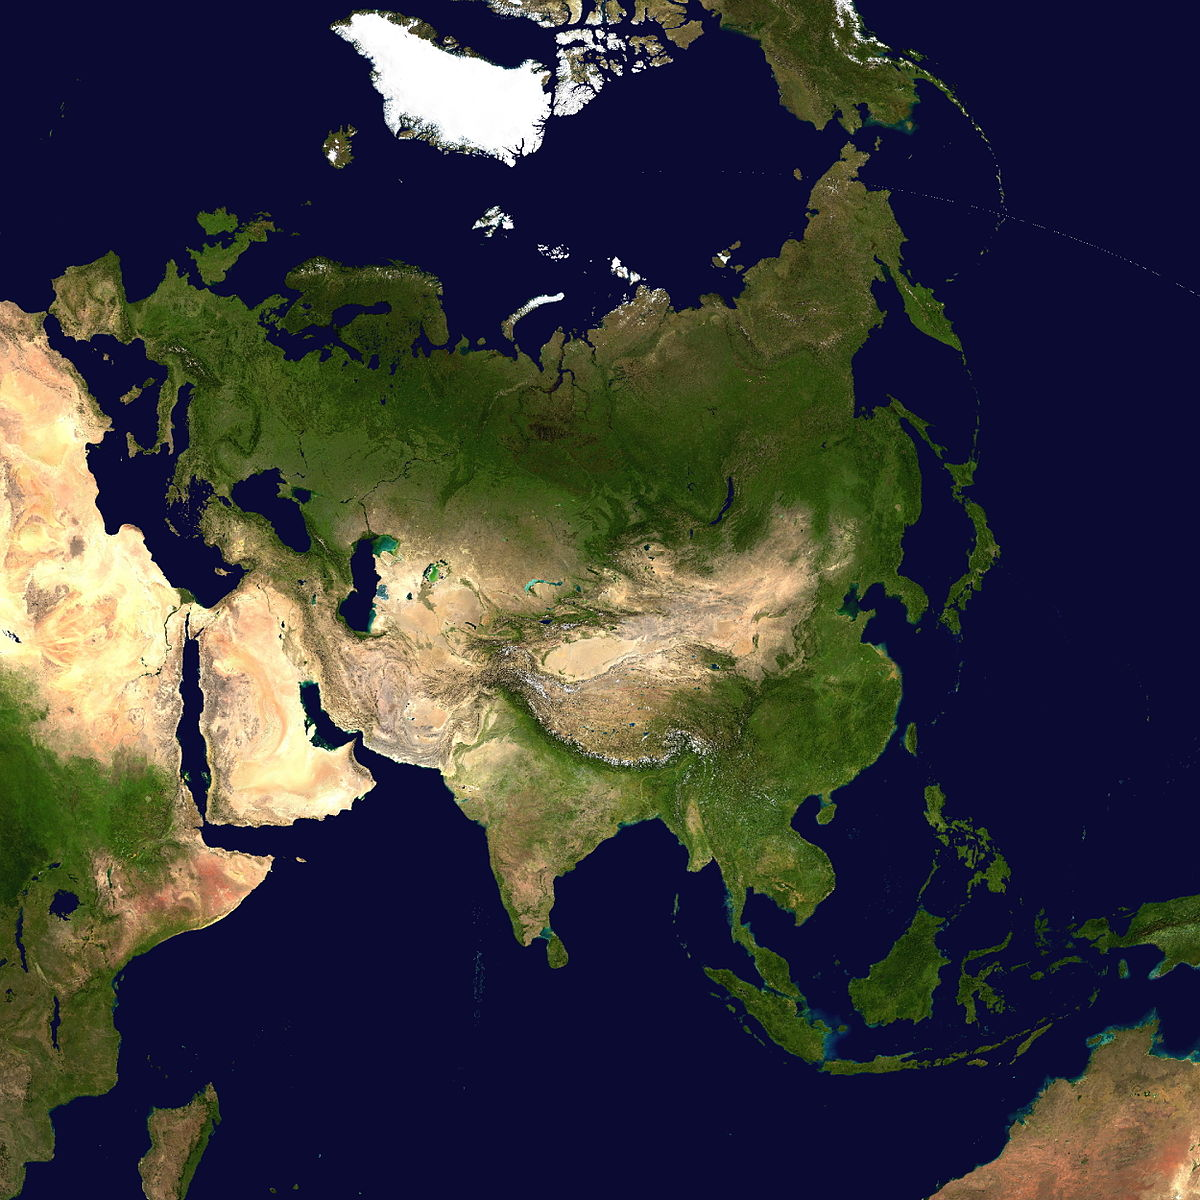 https://upload.wikimedia.org/wikipedia/commons/thumb/5/57/Eurasia_location_map_-_Physical.jpg/1200px-Eurasia_location_map_-_Physical.jpg